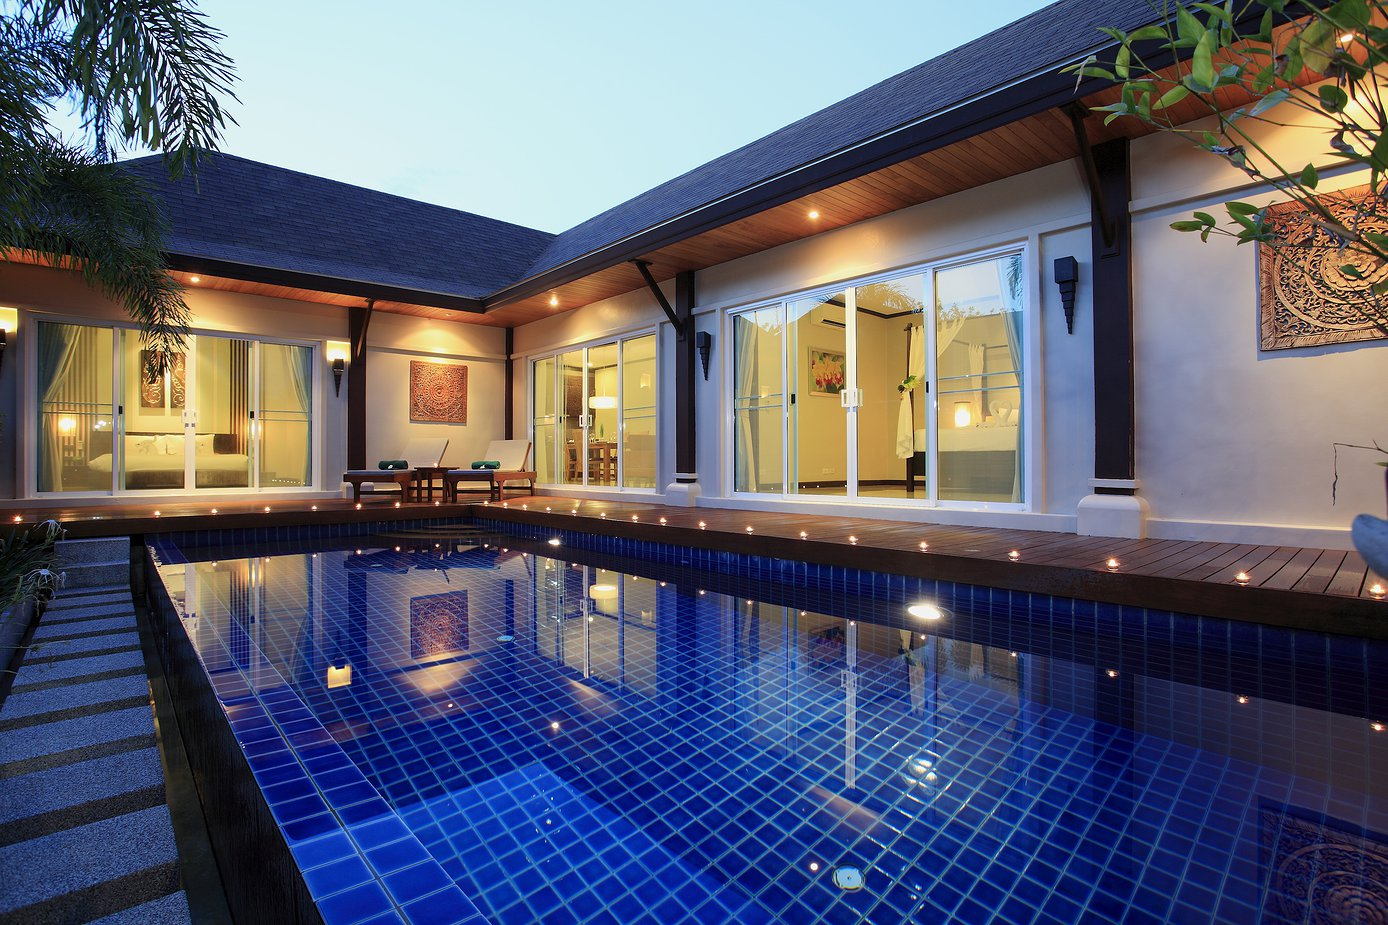 3 bedroom modern asian style villa in Rawai